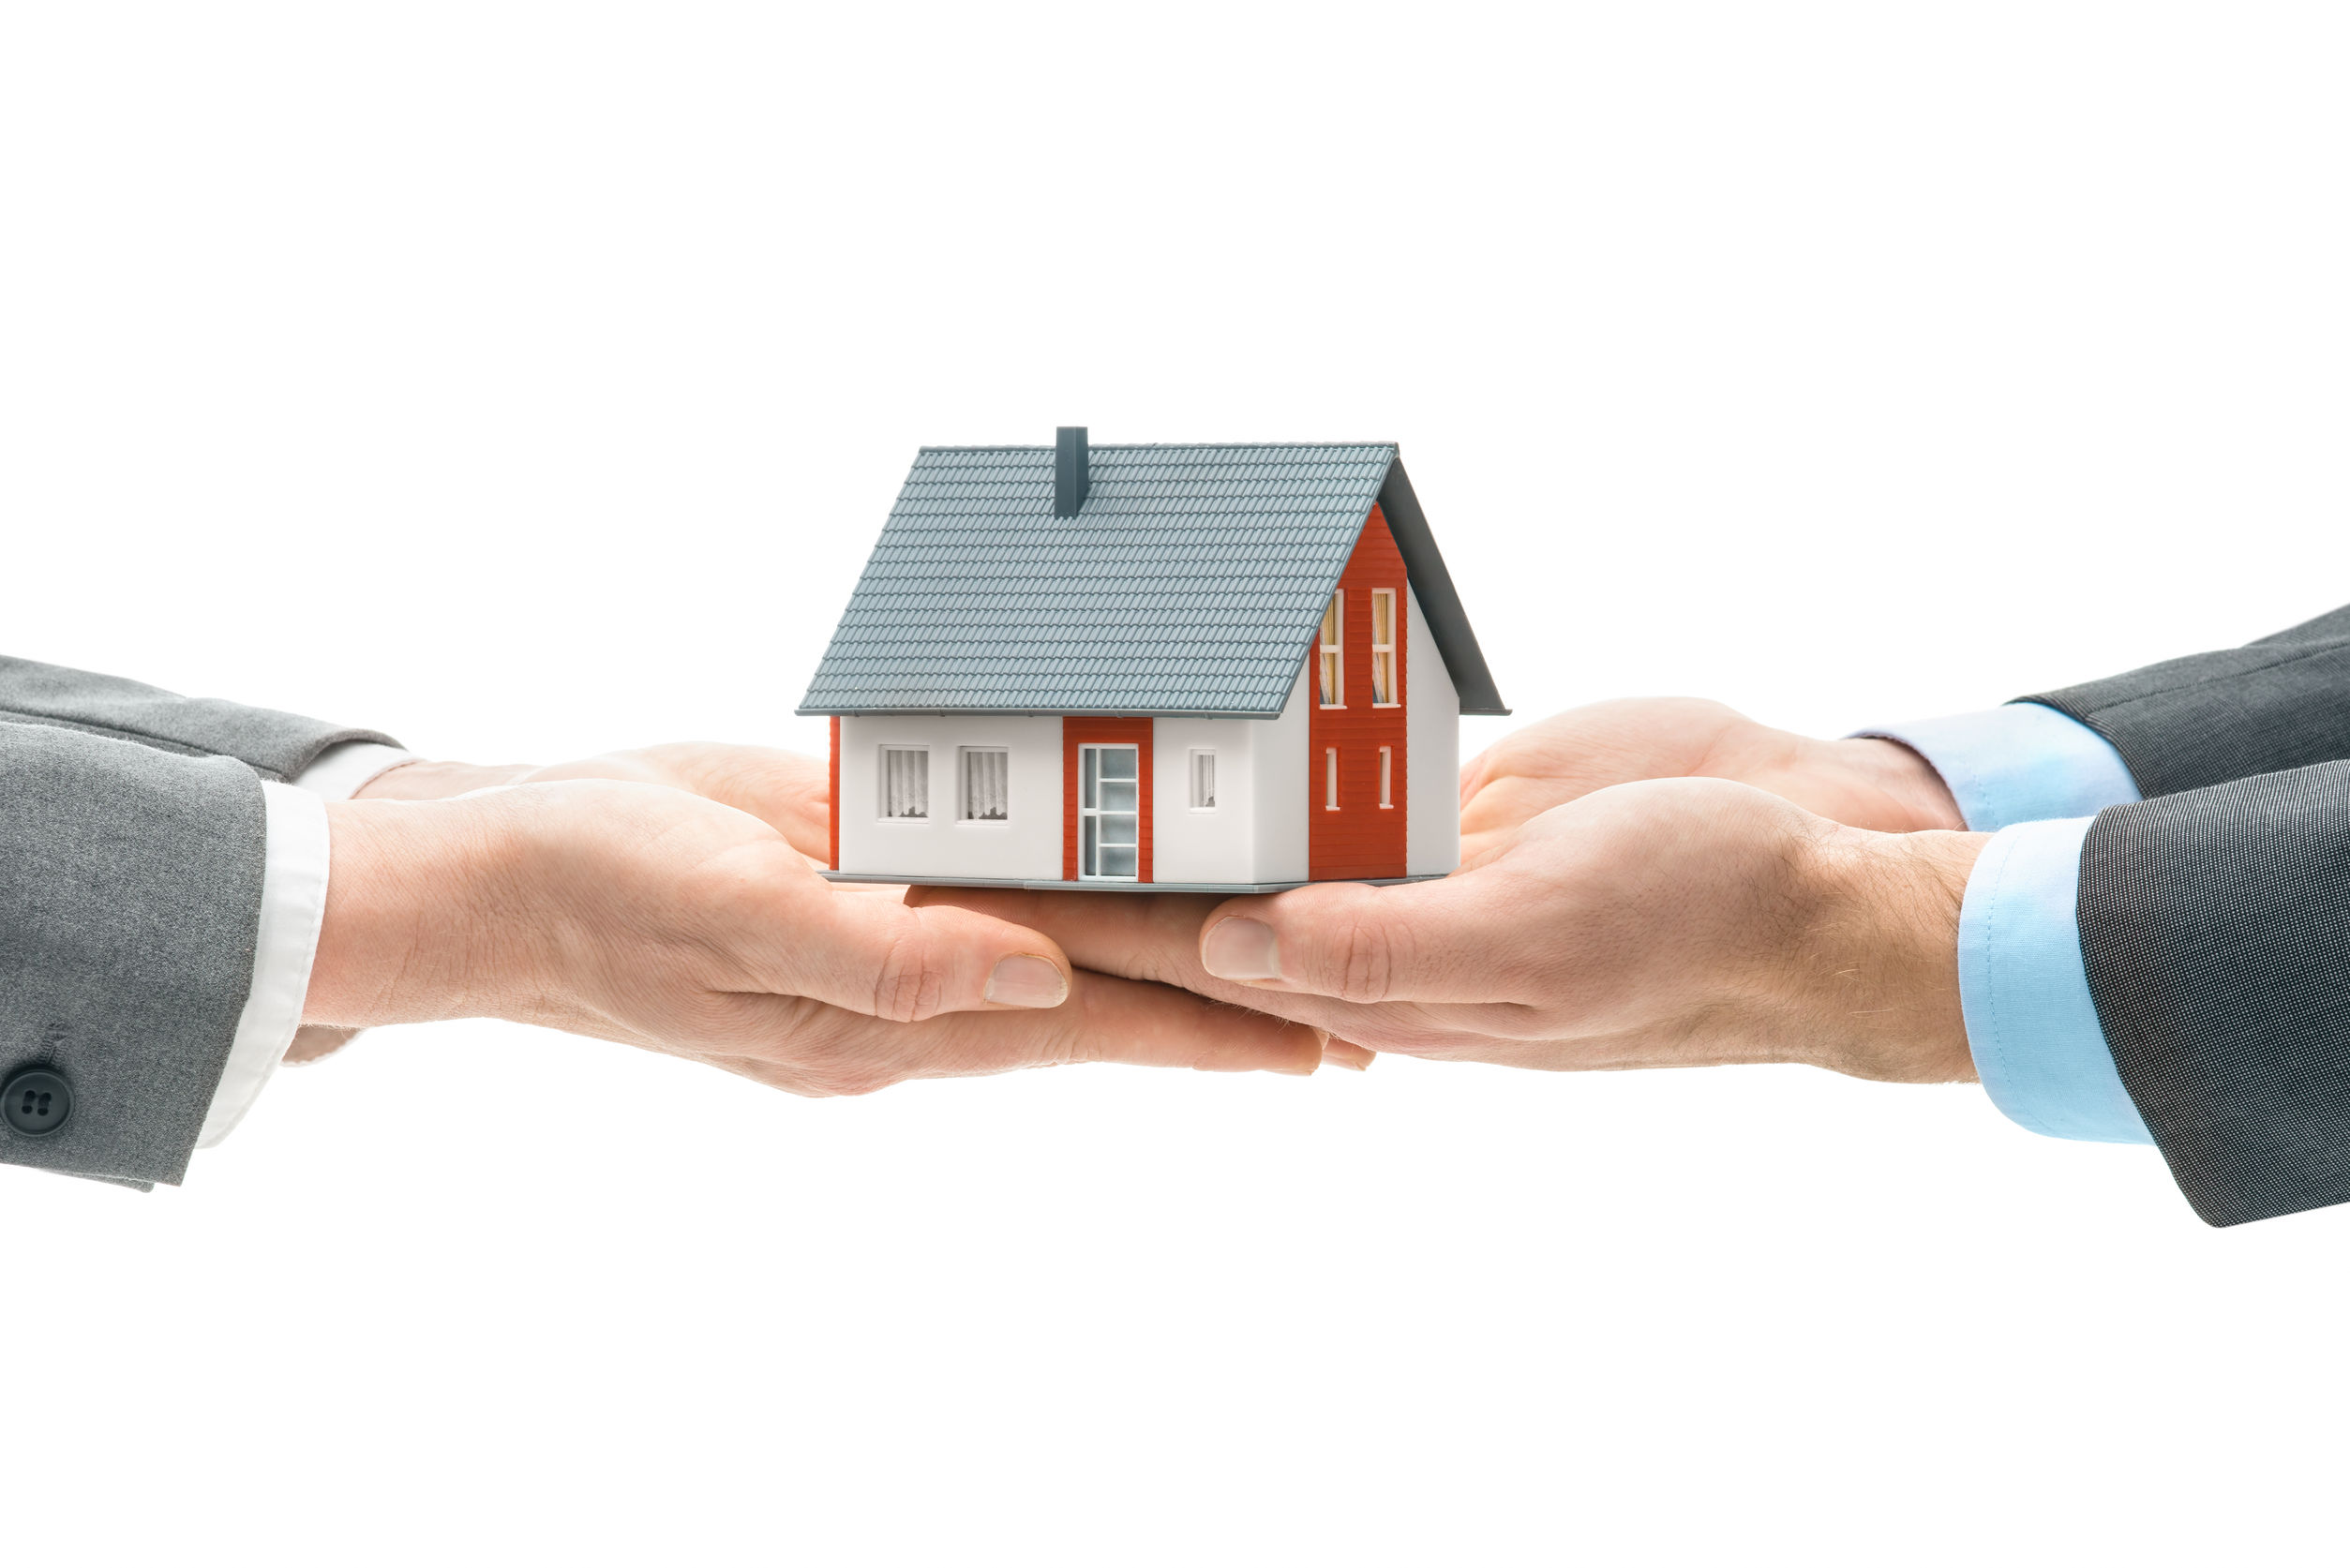 Examining COVID-19 impacts on real estate